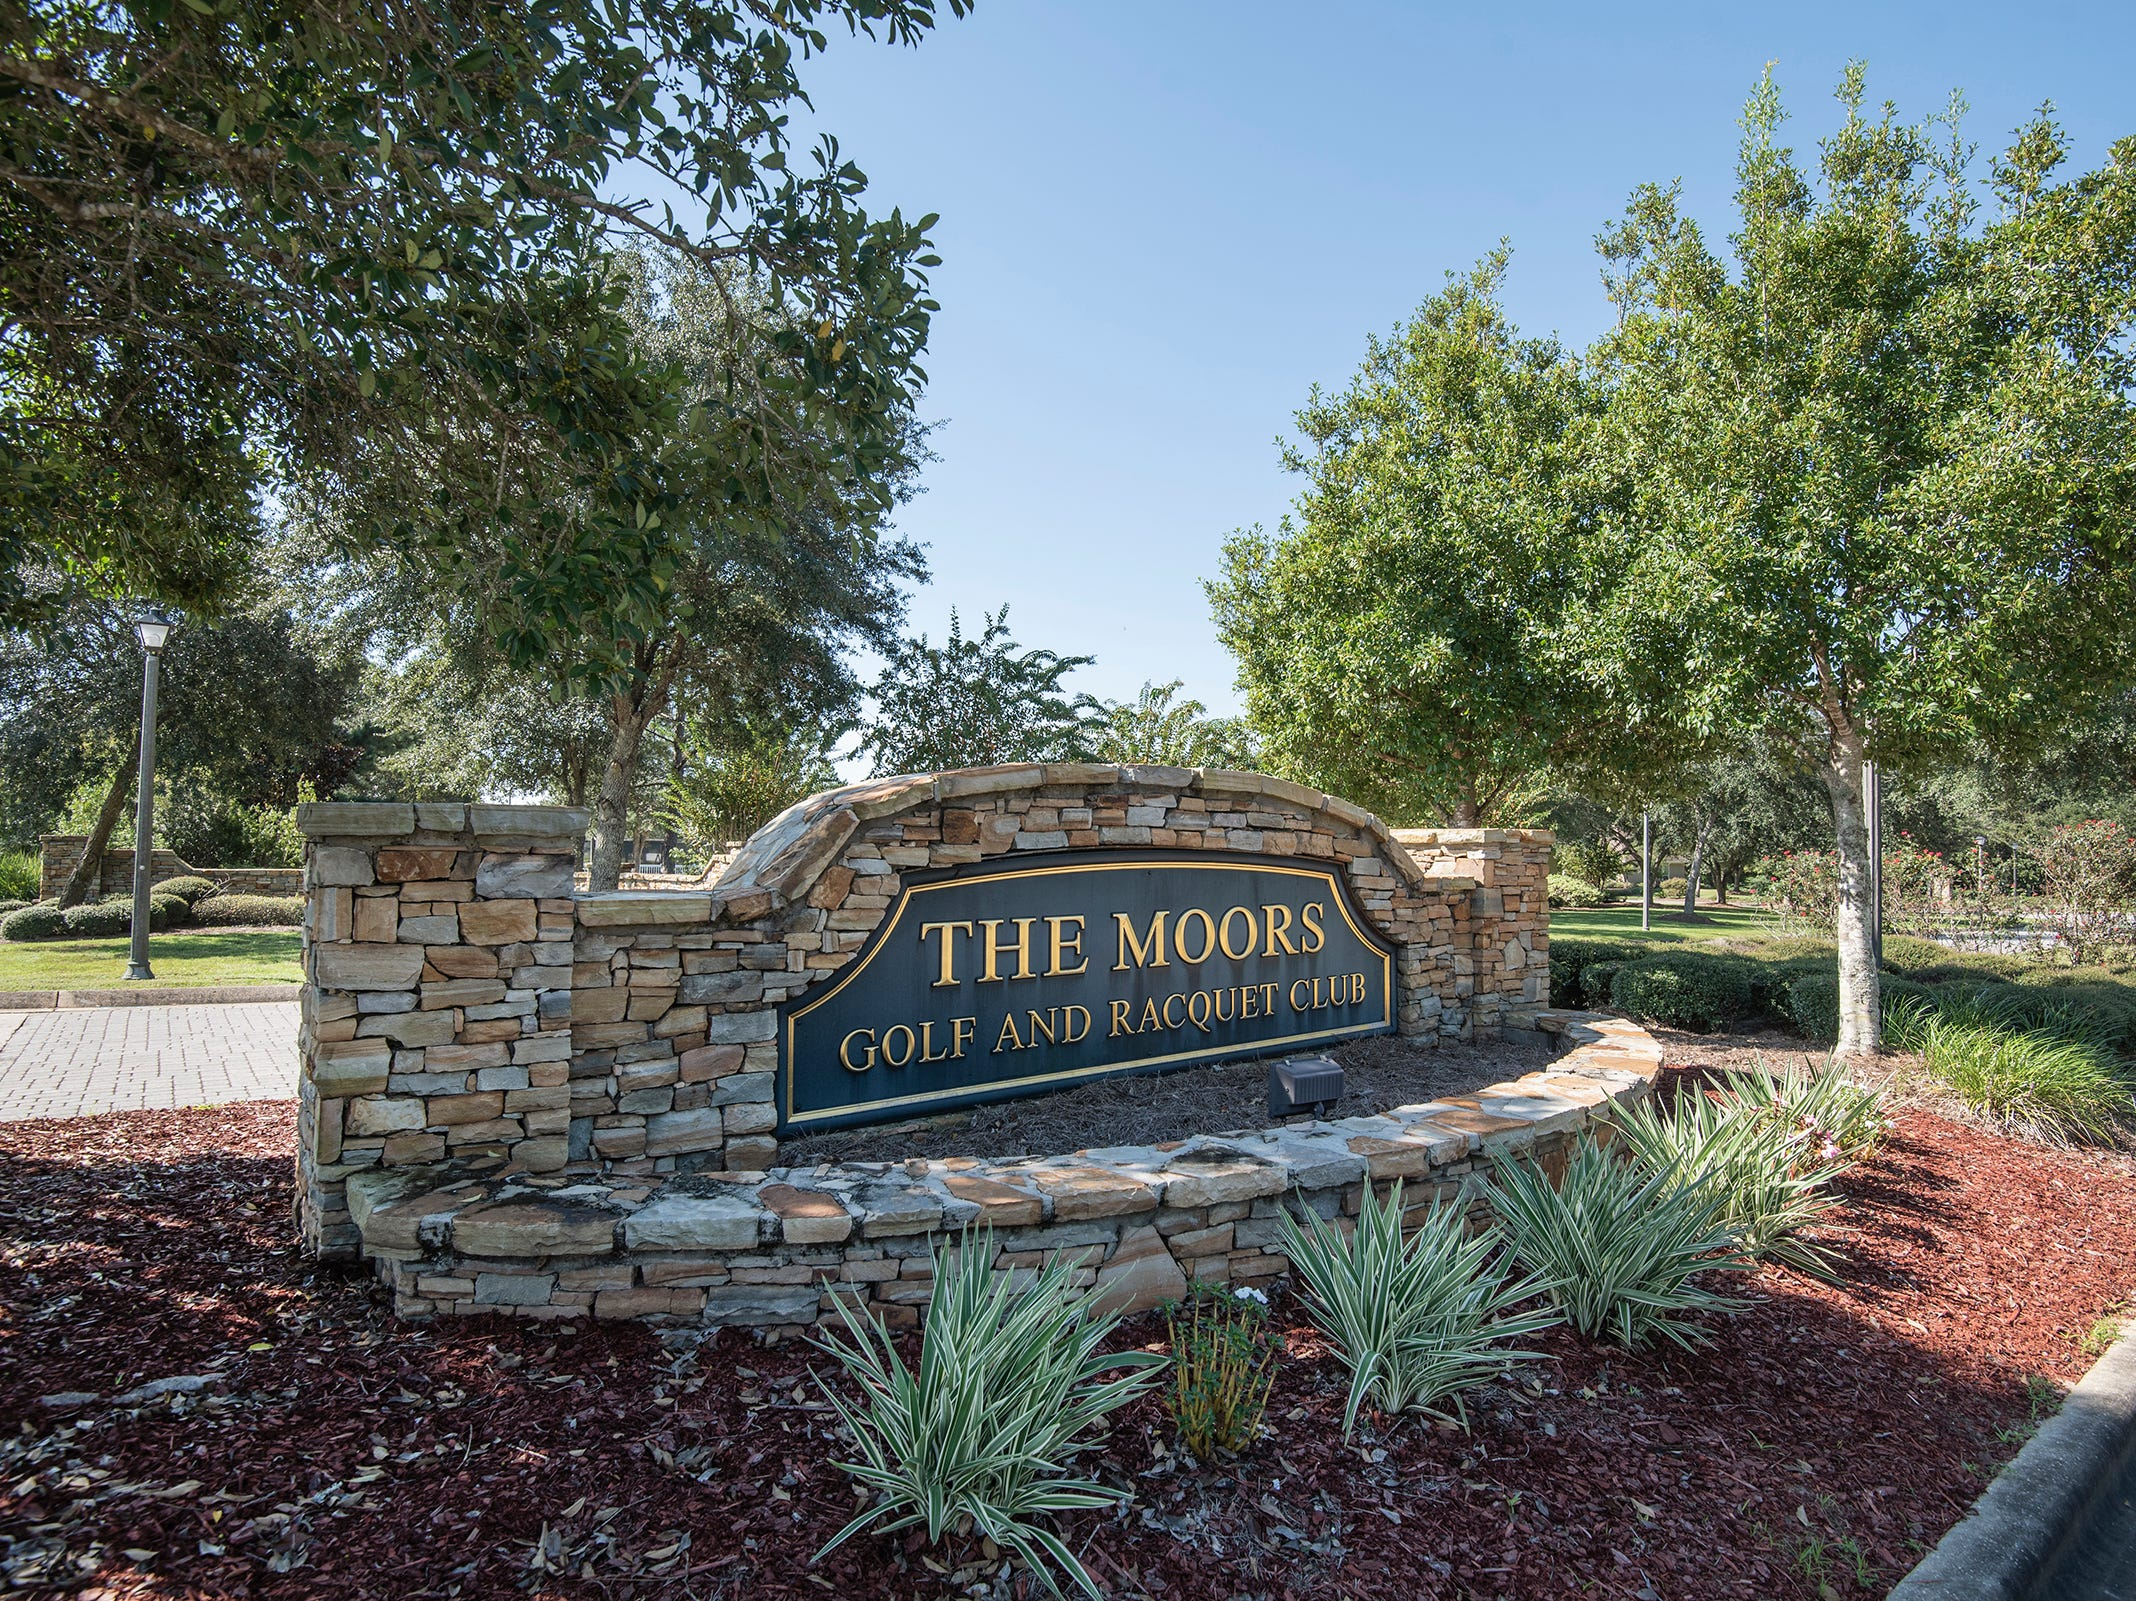 The Dream Home is located in The Moors community.